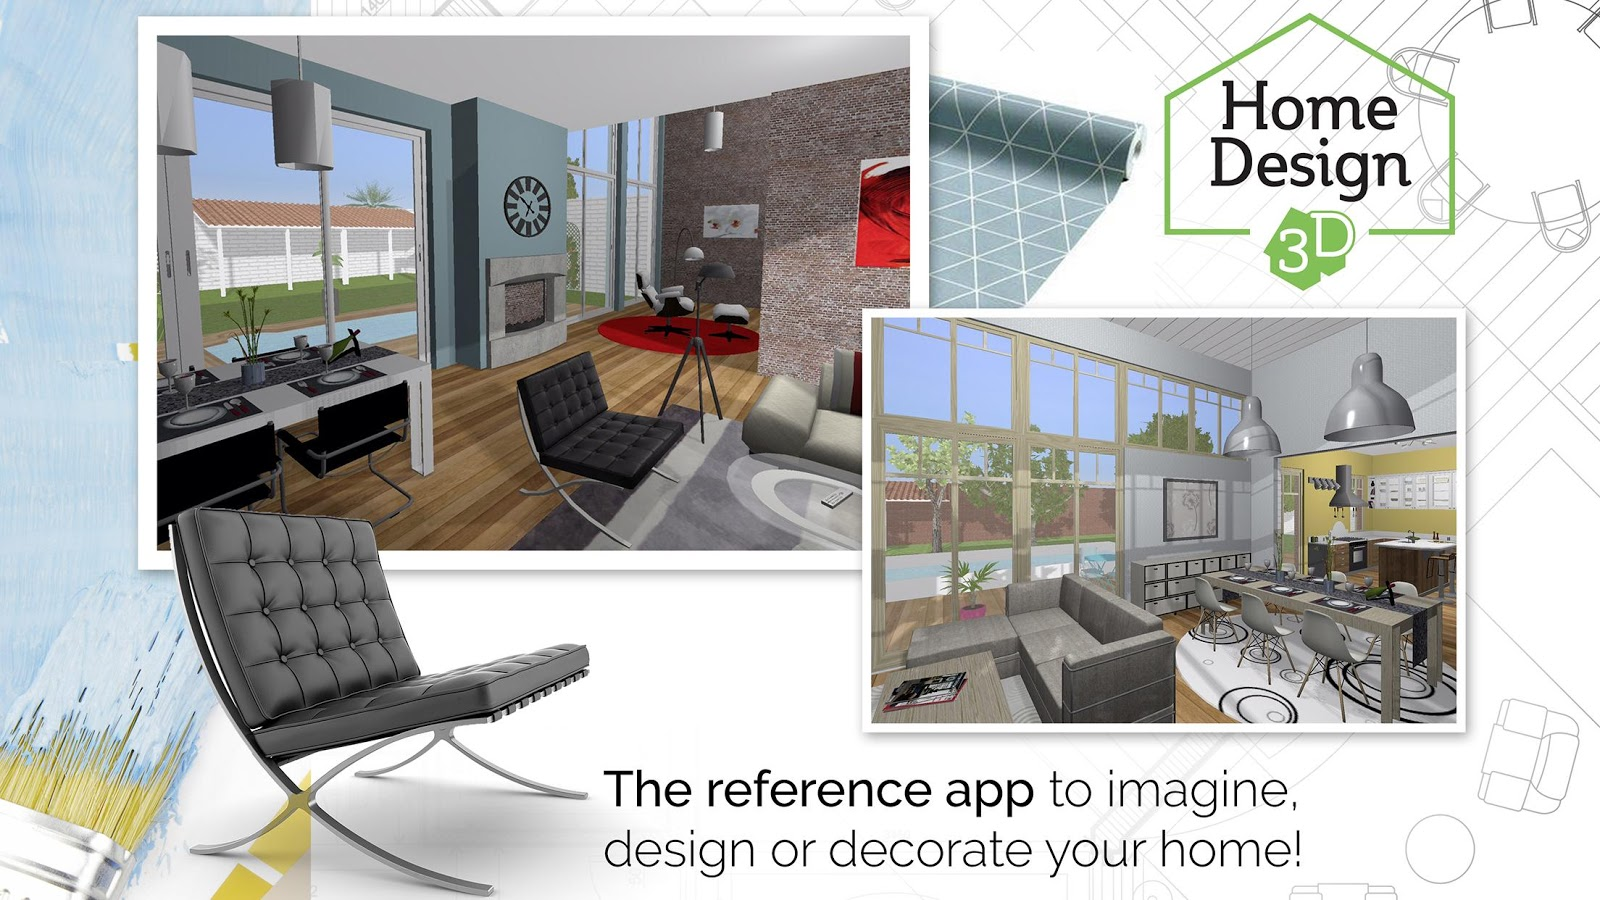 Home design 3d freemium android google play for Interior design shopping app